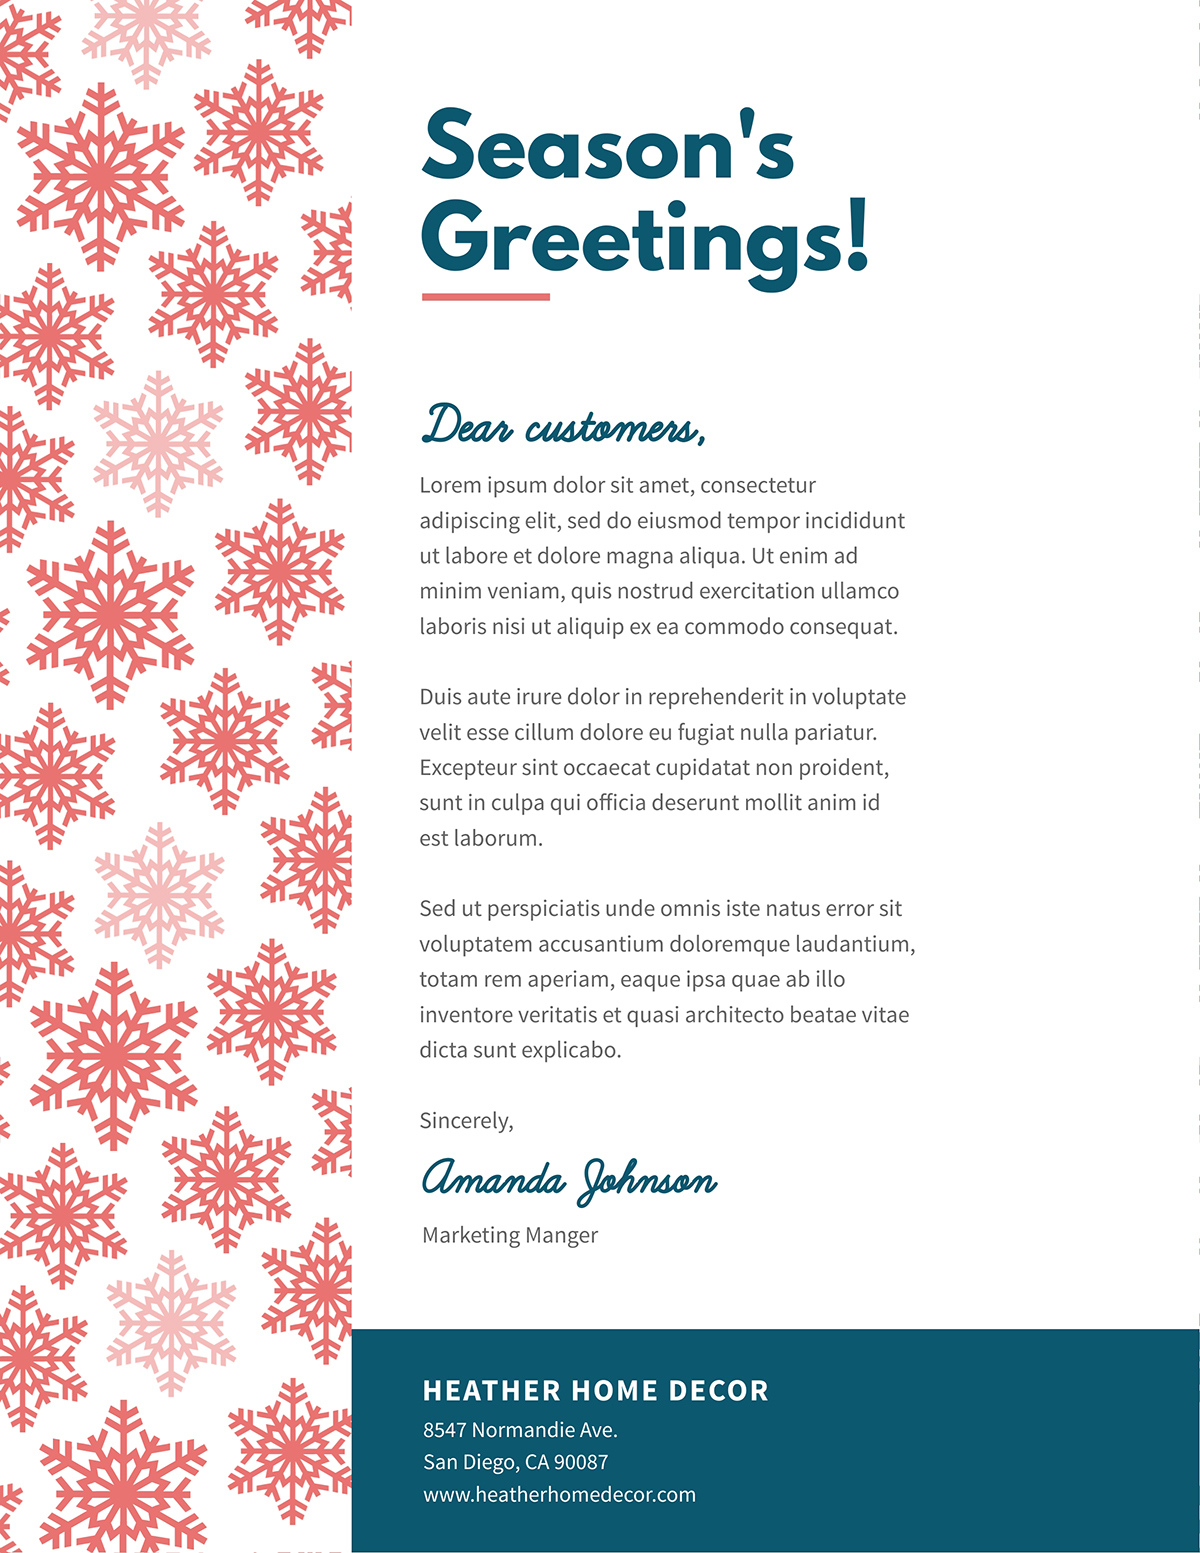 Holiday business letter template available in Visme.